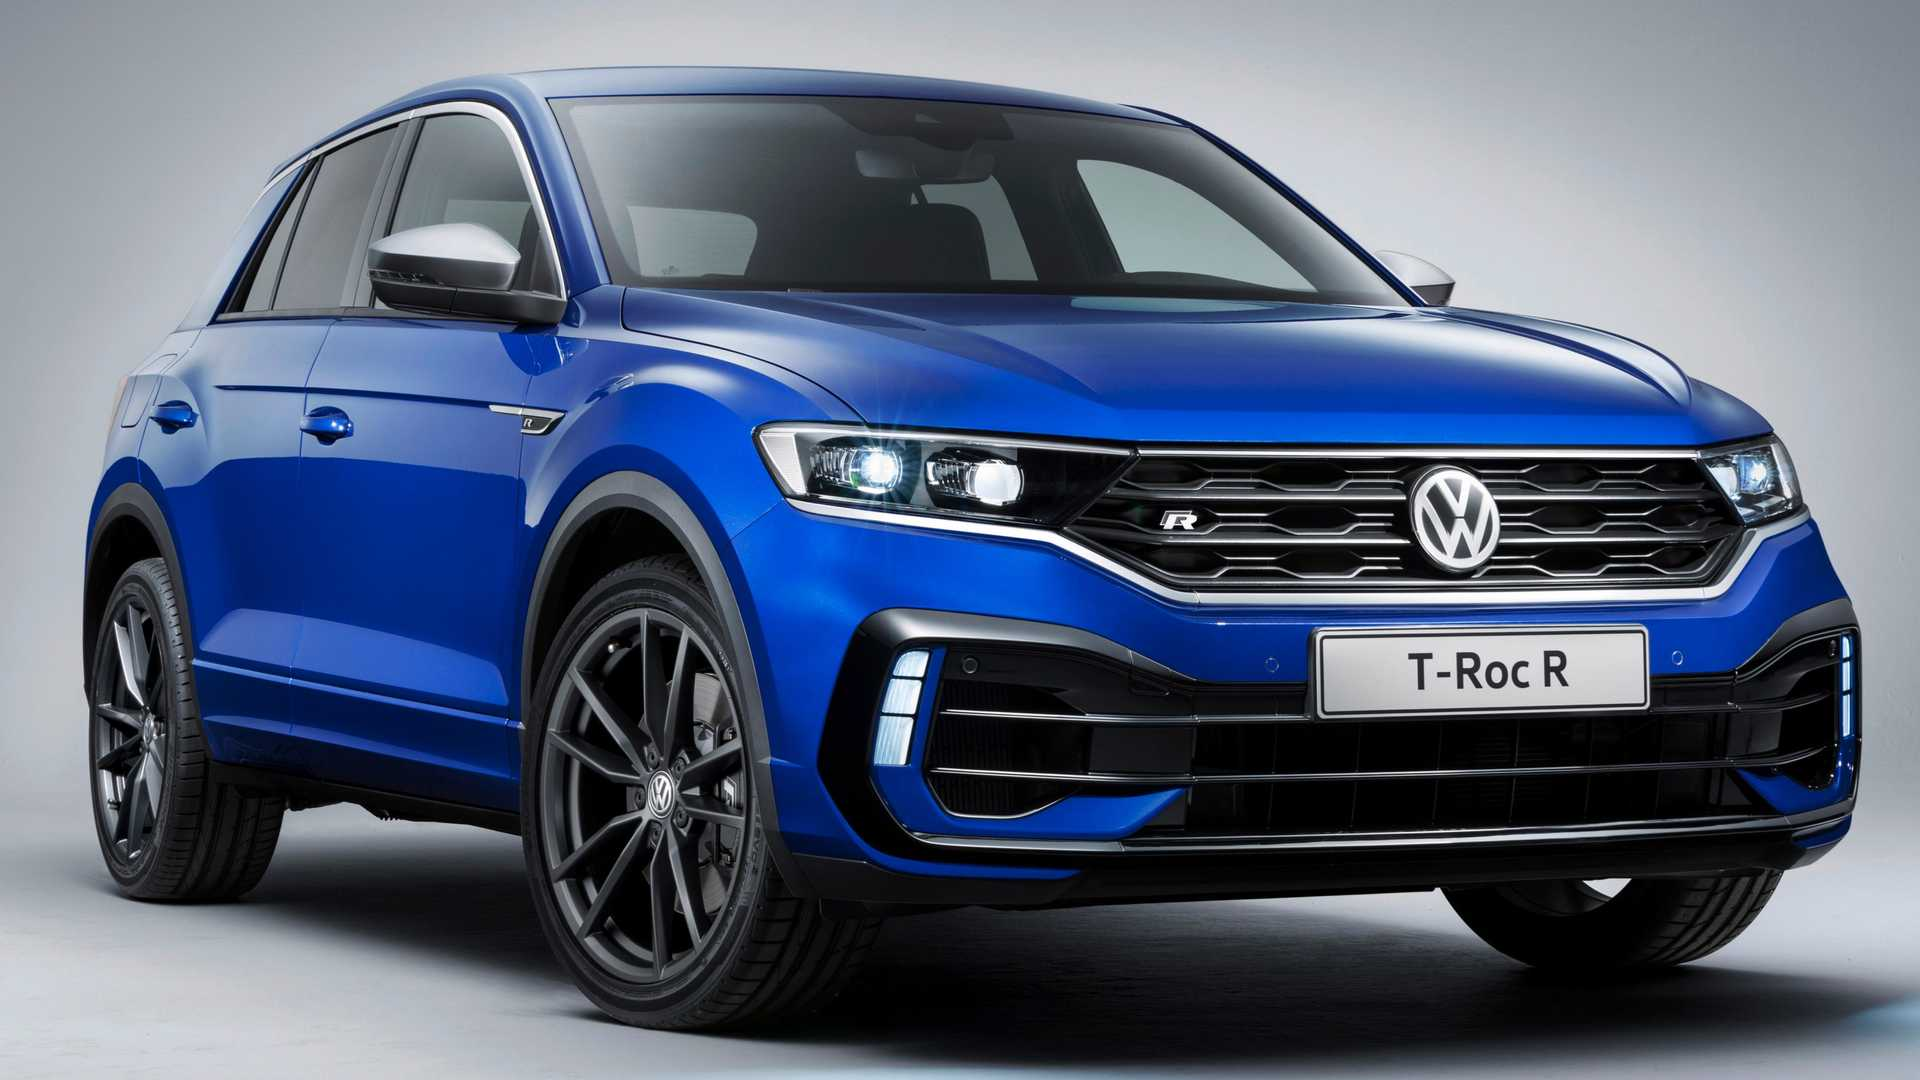 31 Great Volkswagen R Line 2019 Redesign And Concept Price and Review by Volkswagen R Line 2019 Redesign And Concept